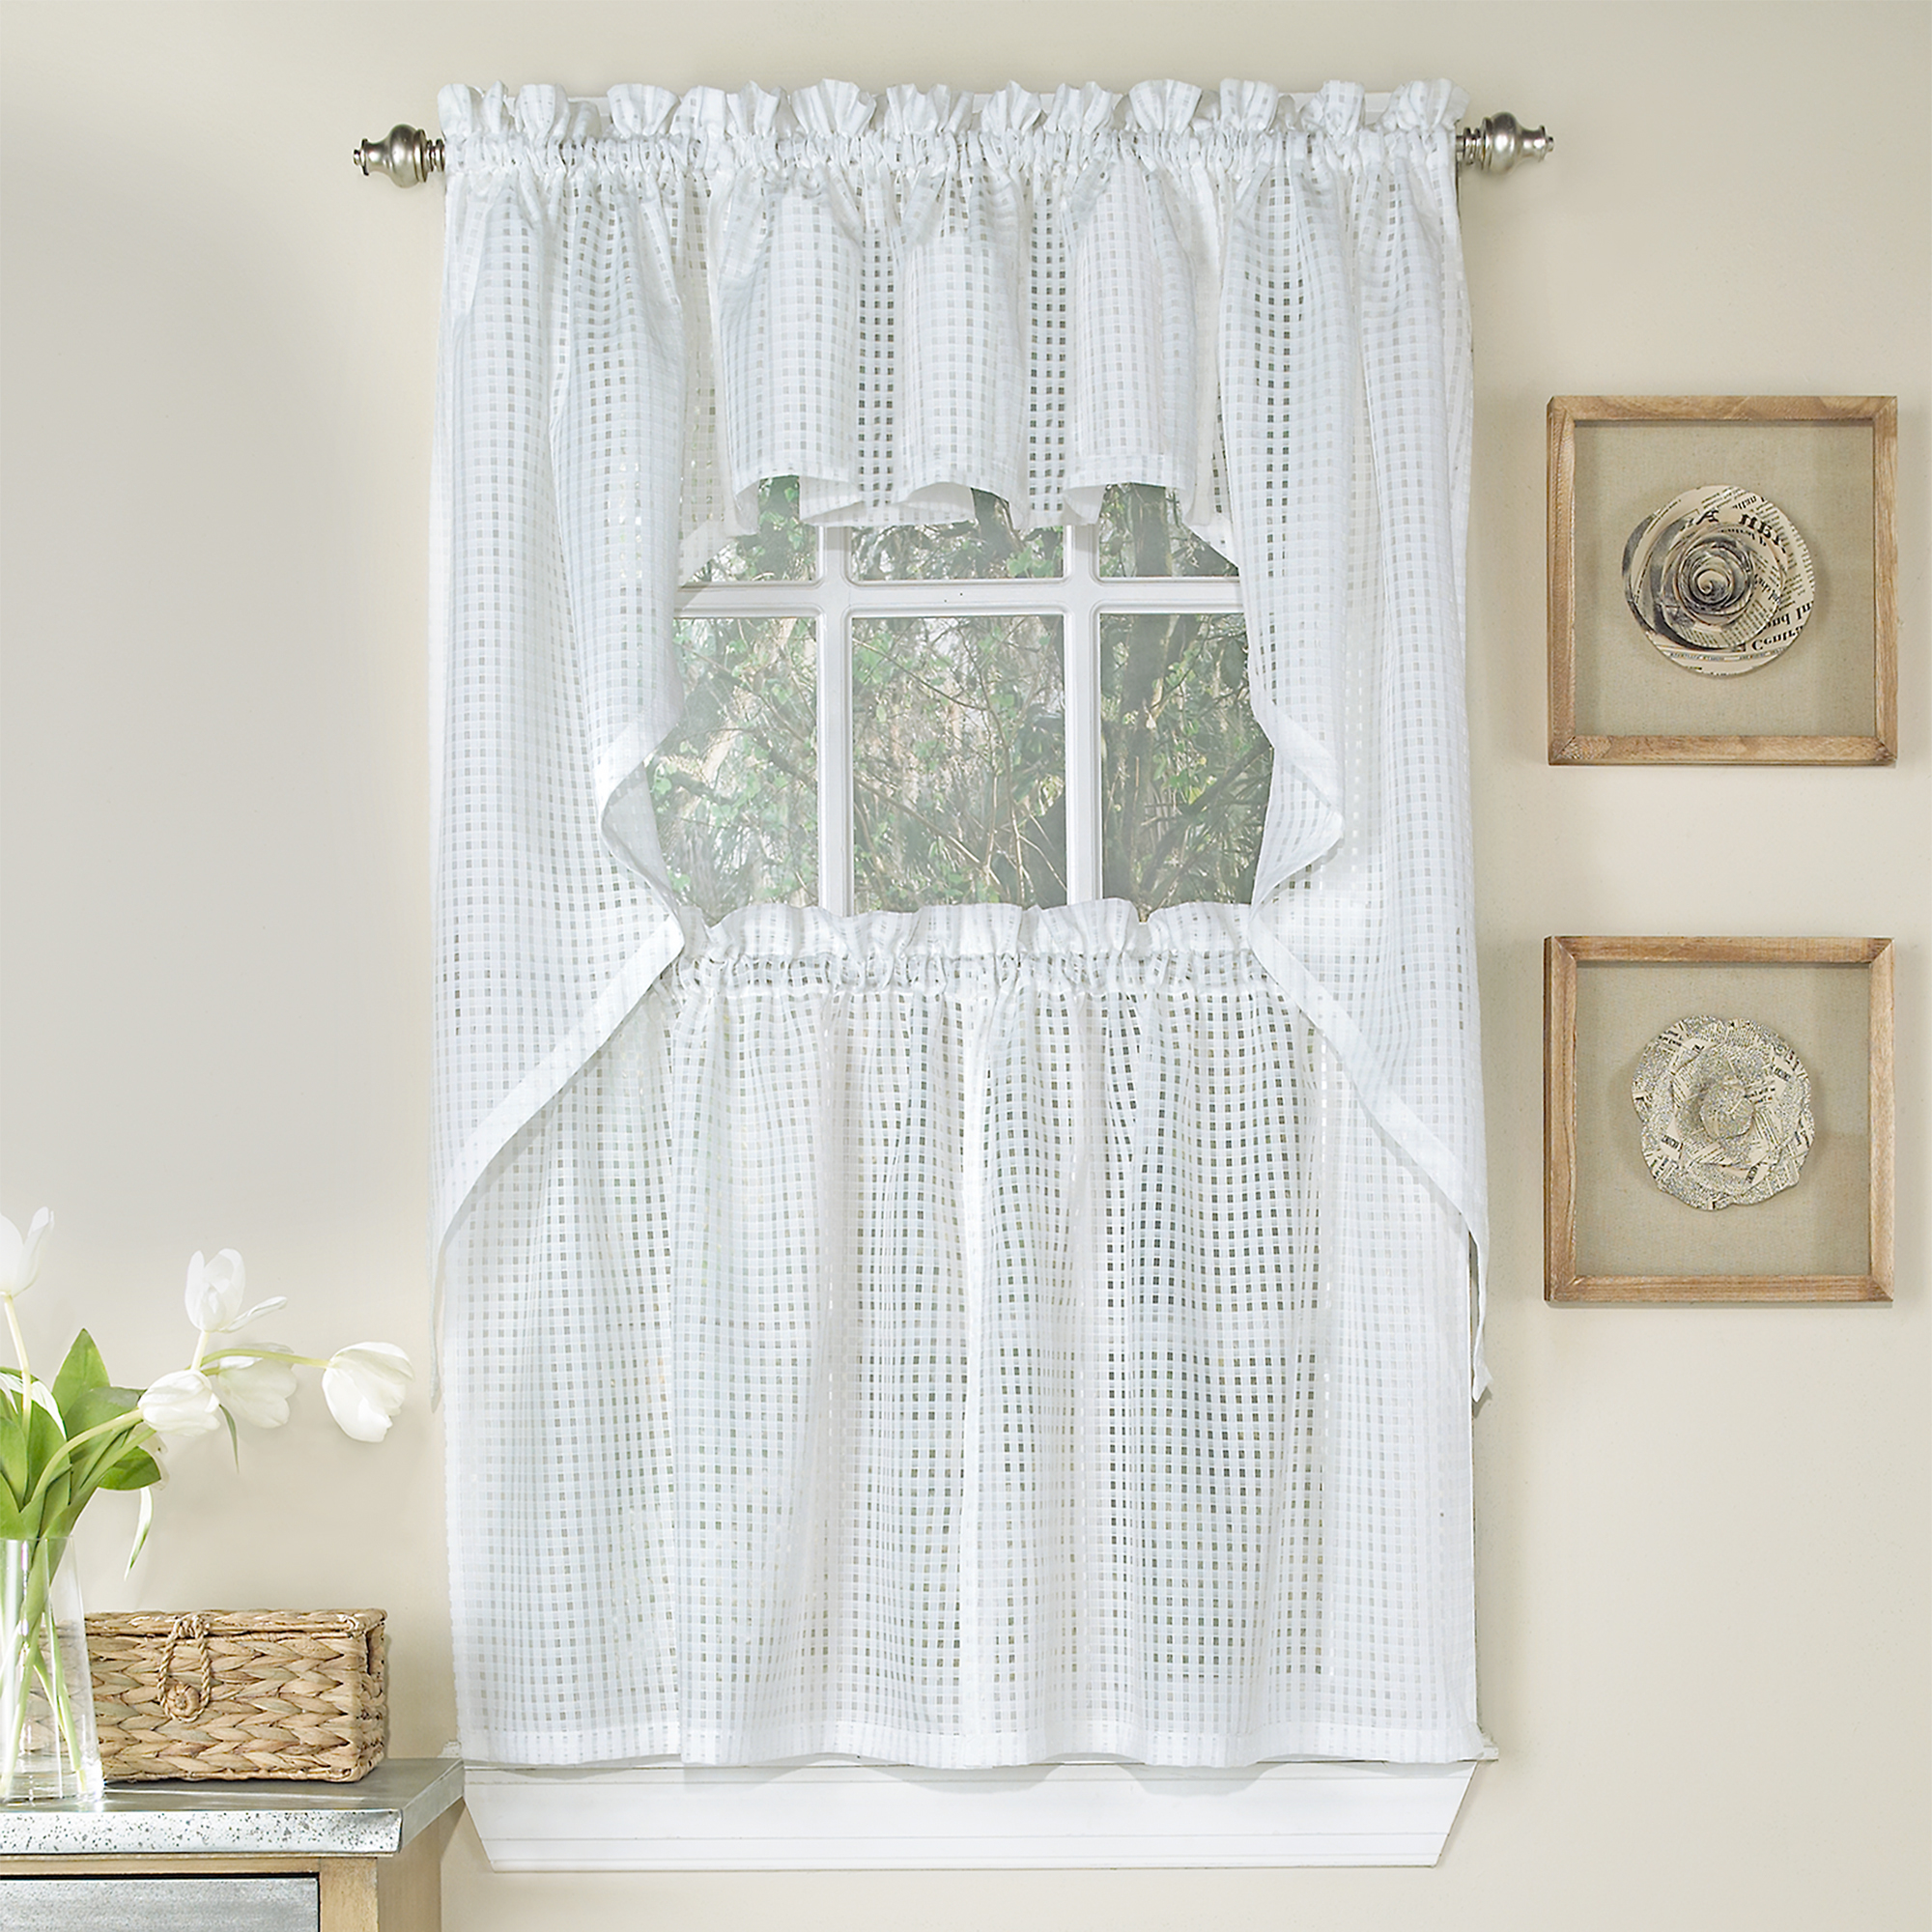 Details About Micro Check 2 Tone White Semi Sheer Window Curtain Tiers, Valance, Or Swag For Well Known White Knit Lace Bird Motif Window Curtain Tiers (View 9 of 20)